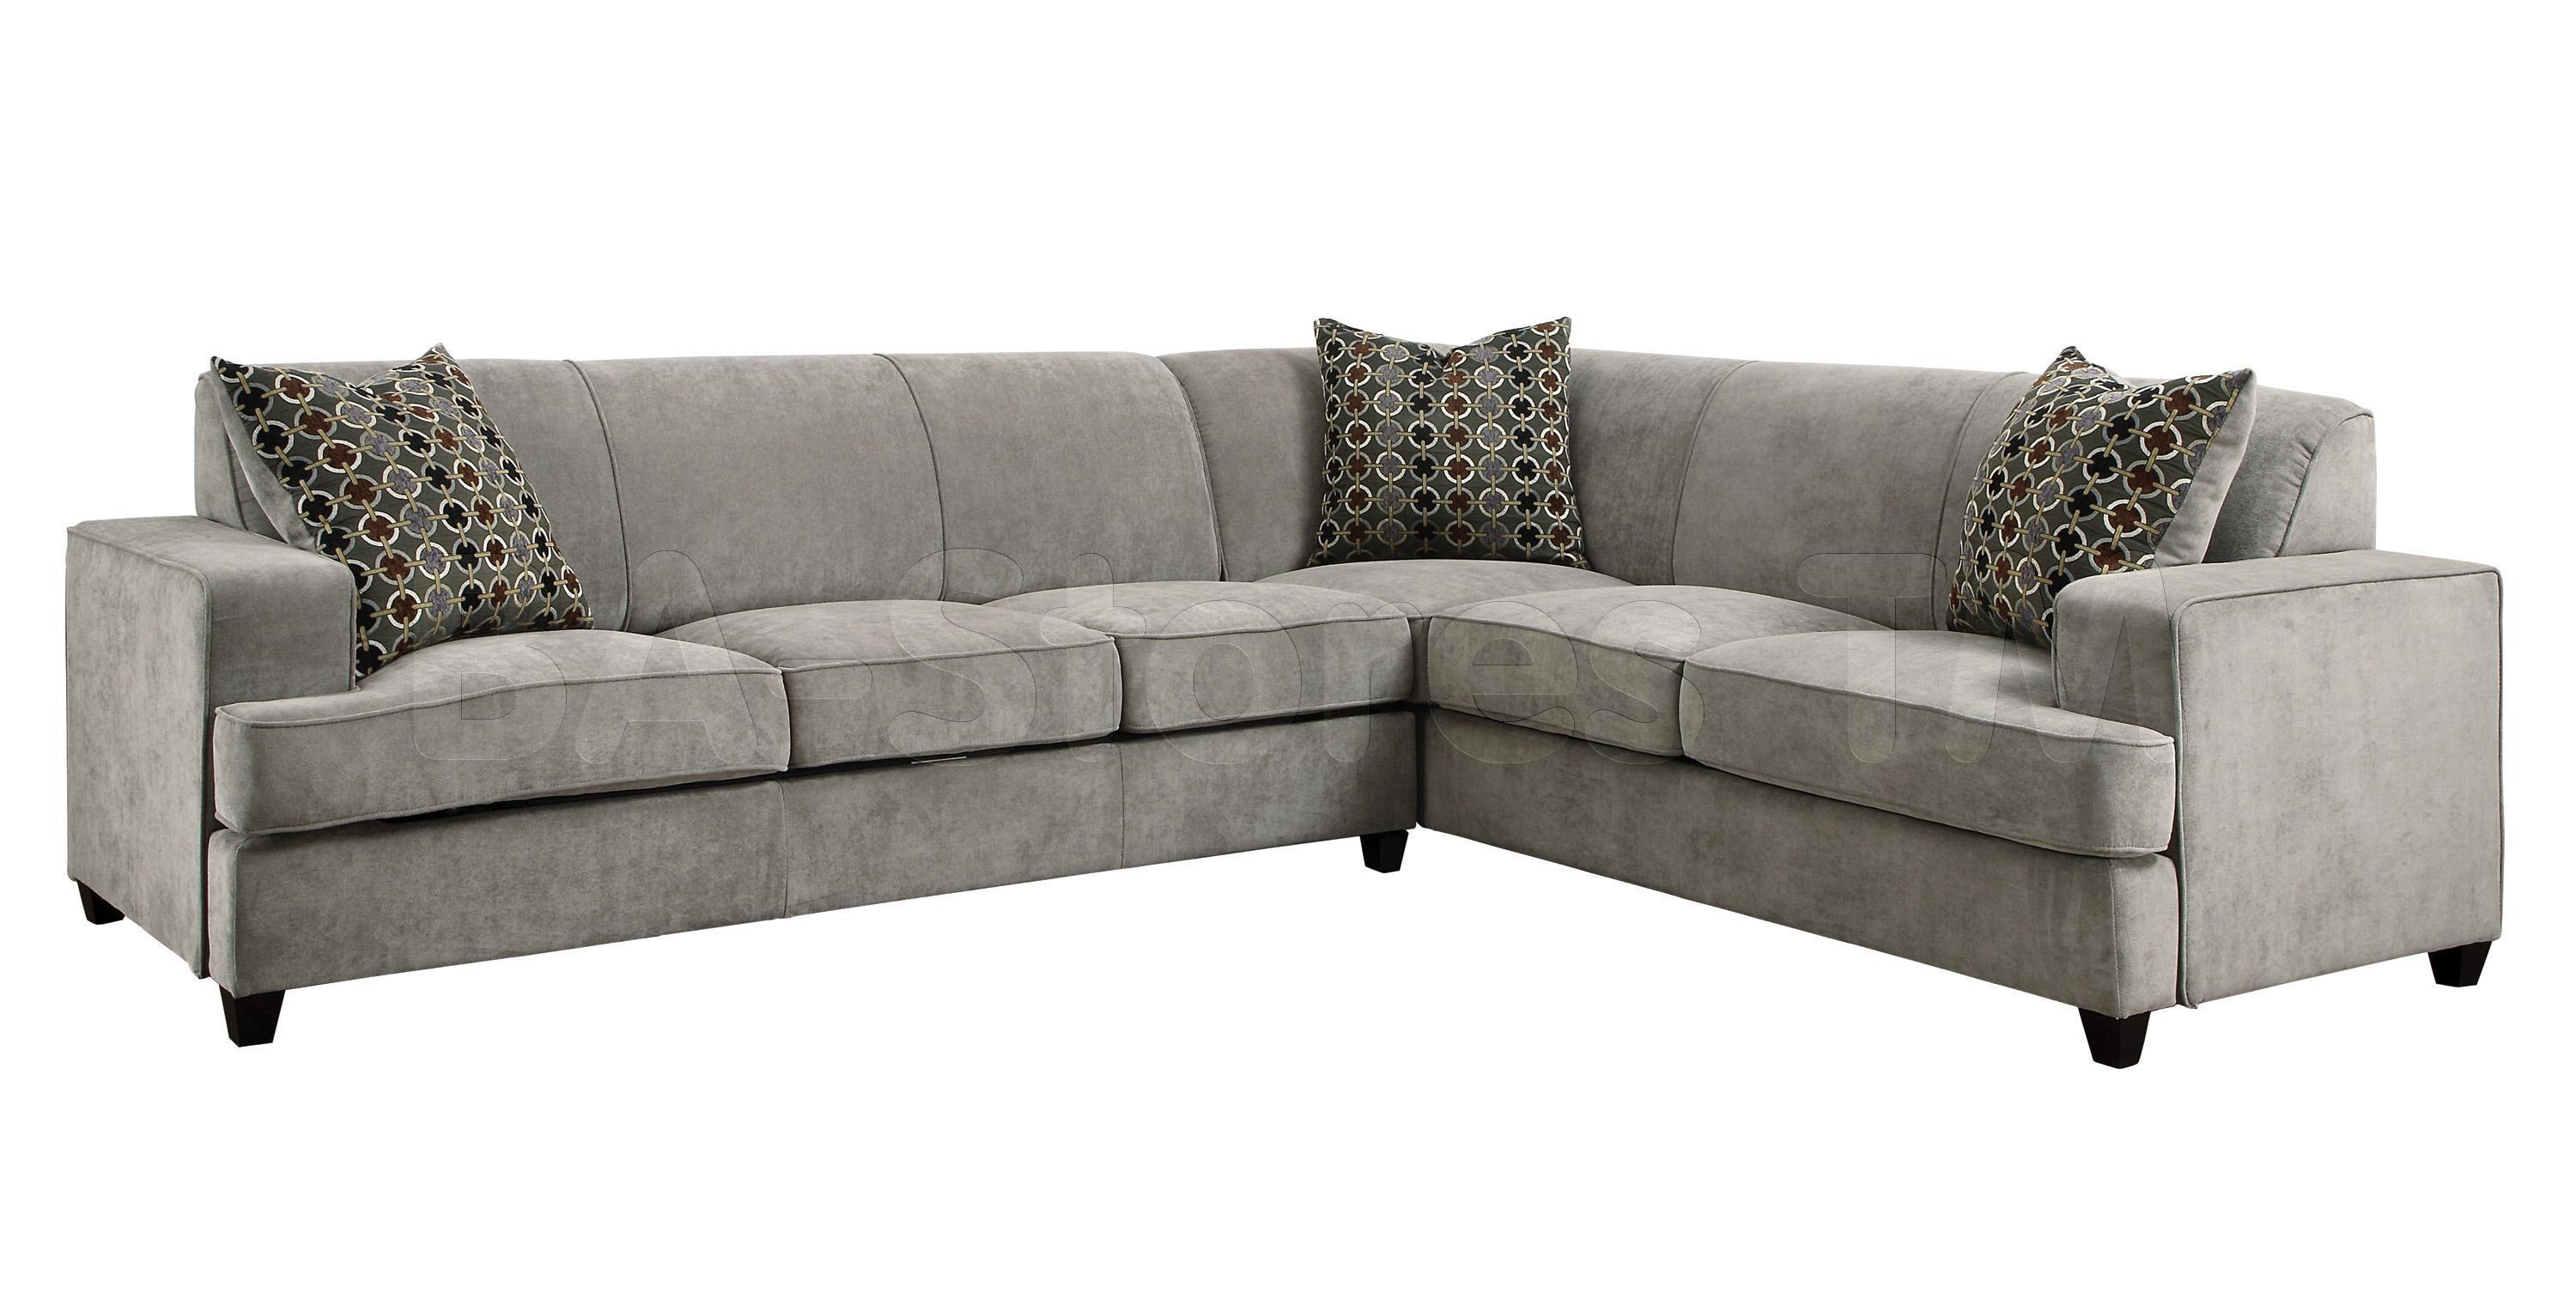 Furniture Home: Exceptionalcrofiber Sectional Sofa Image Concept Pertaining To Stacey Leather Sectional (Image 5 of 20)